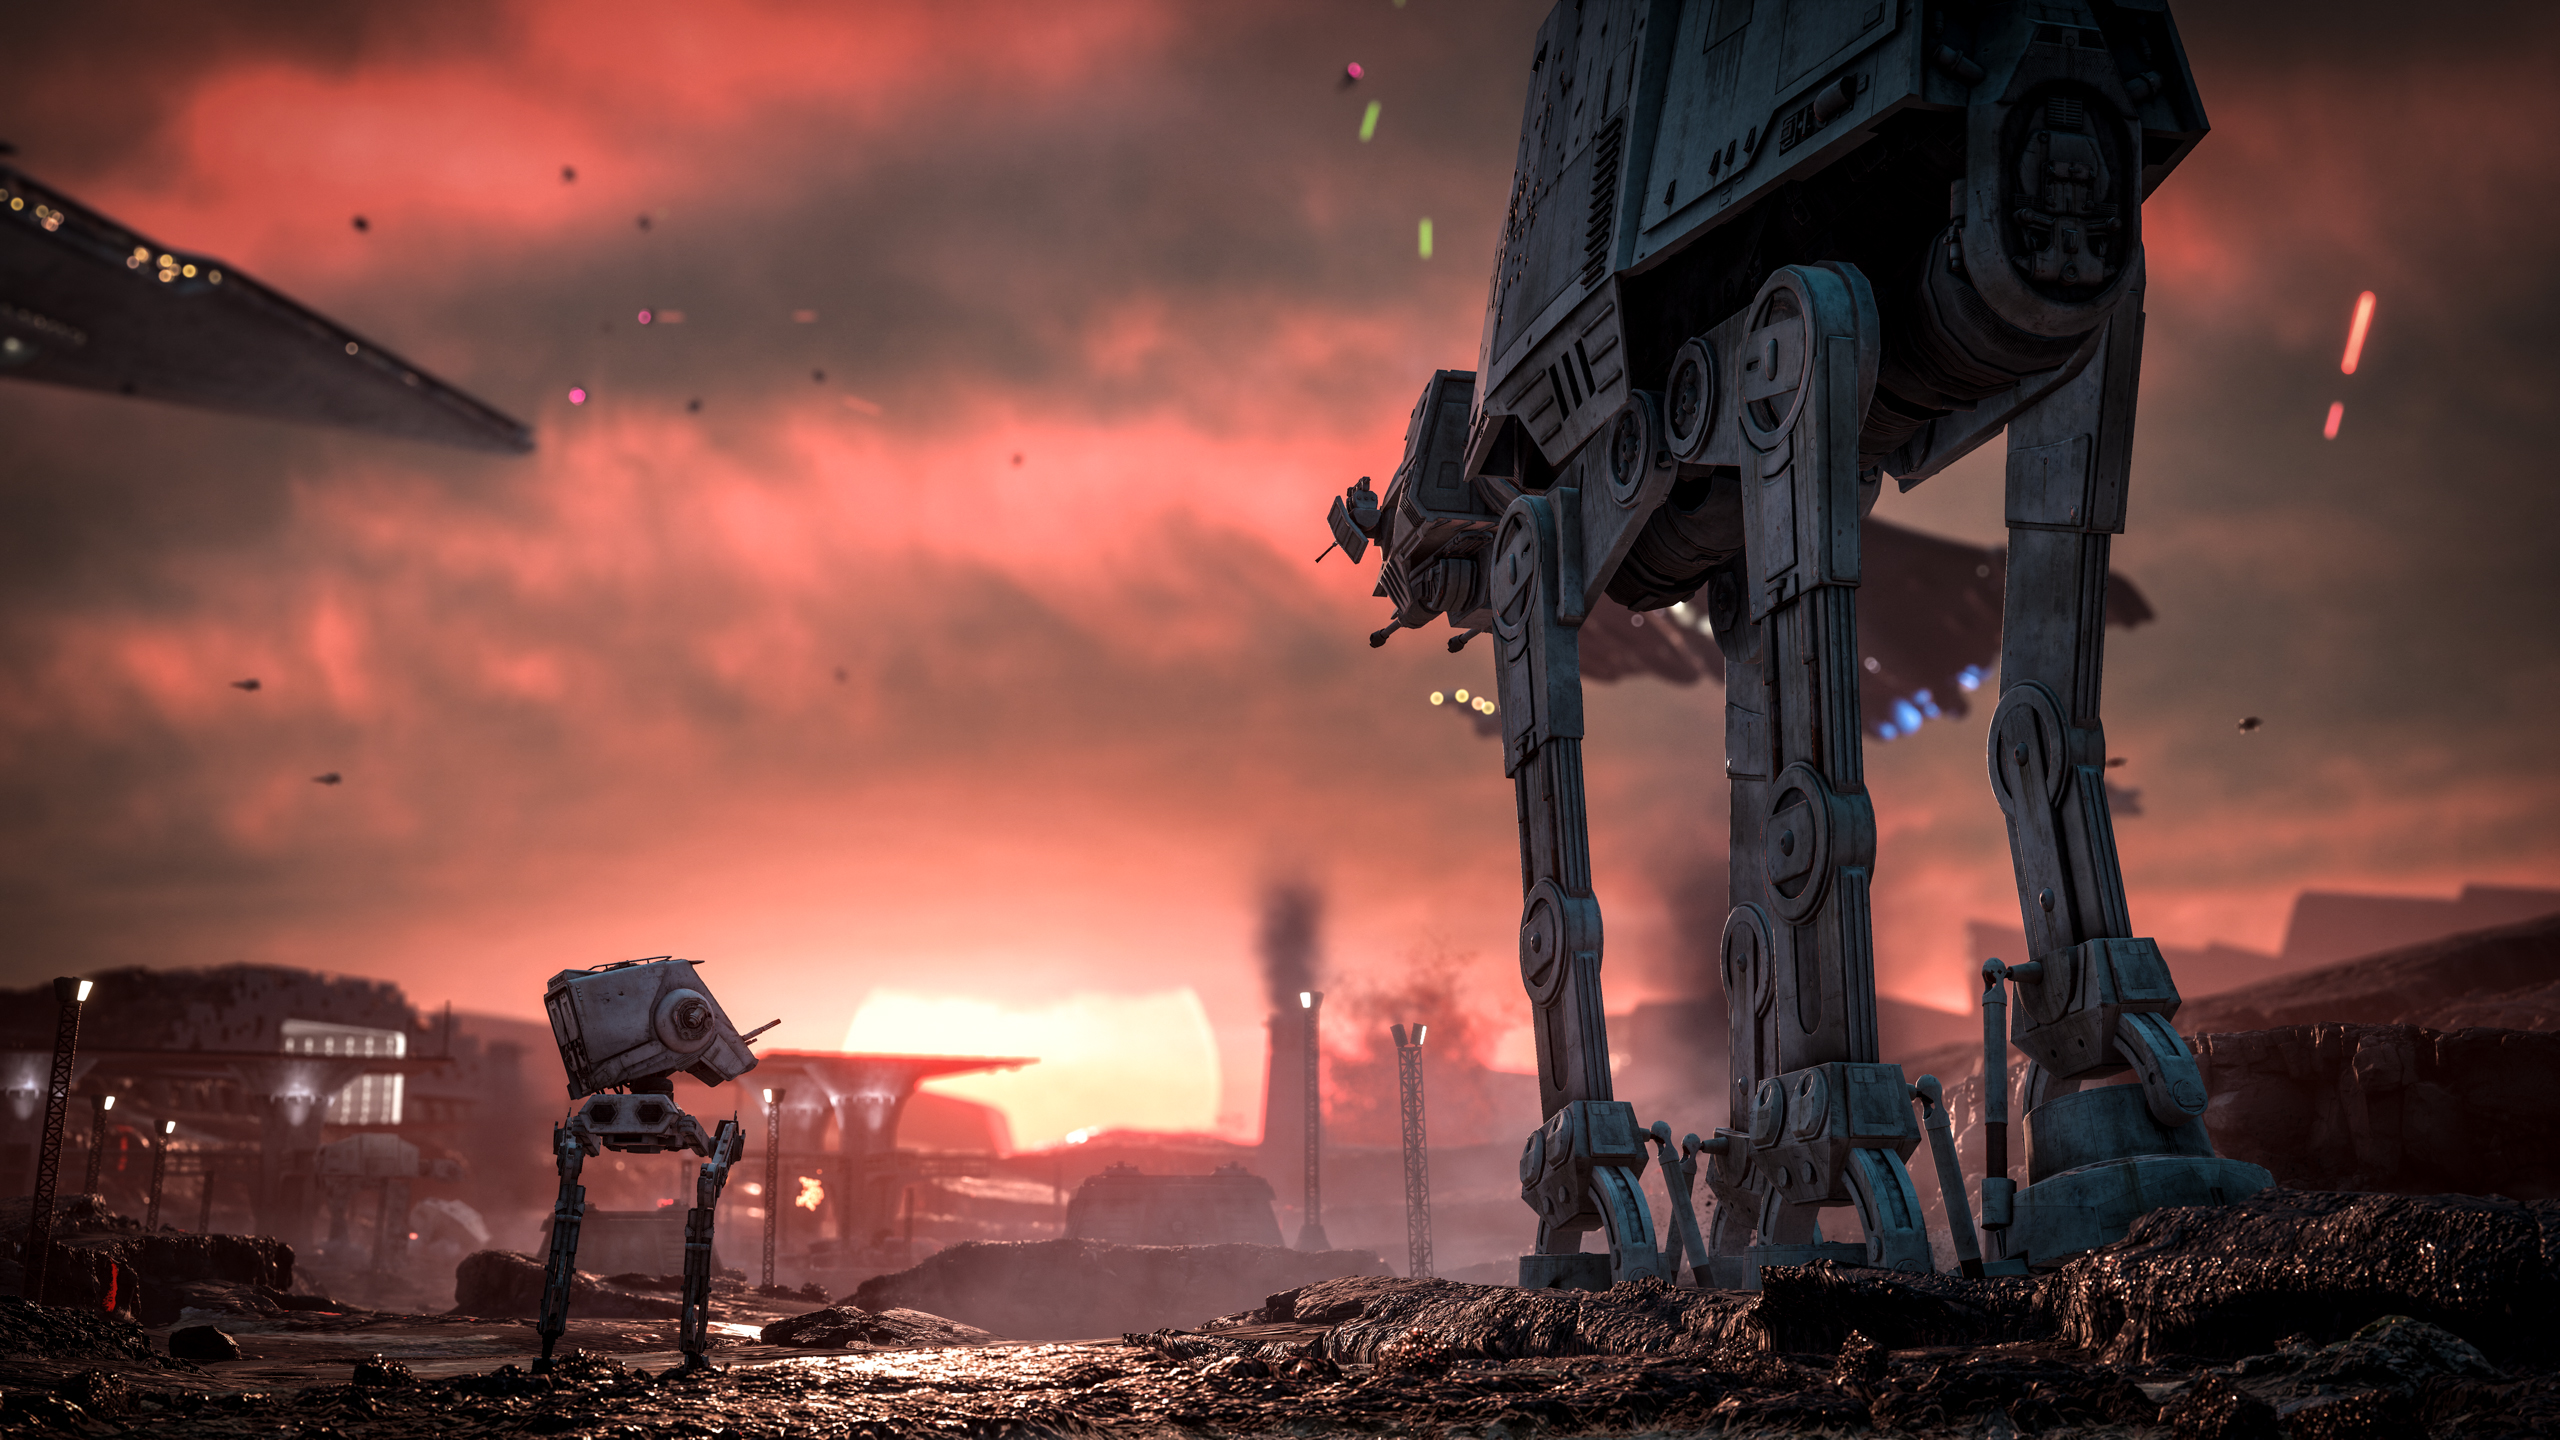 Star Wars Battlefront 2015 HD Wallpaper Background Image 2560x1440